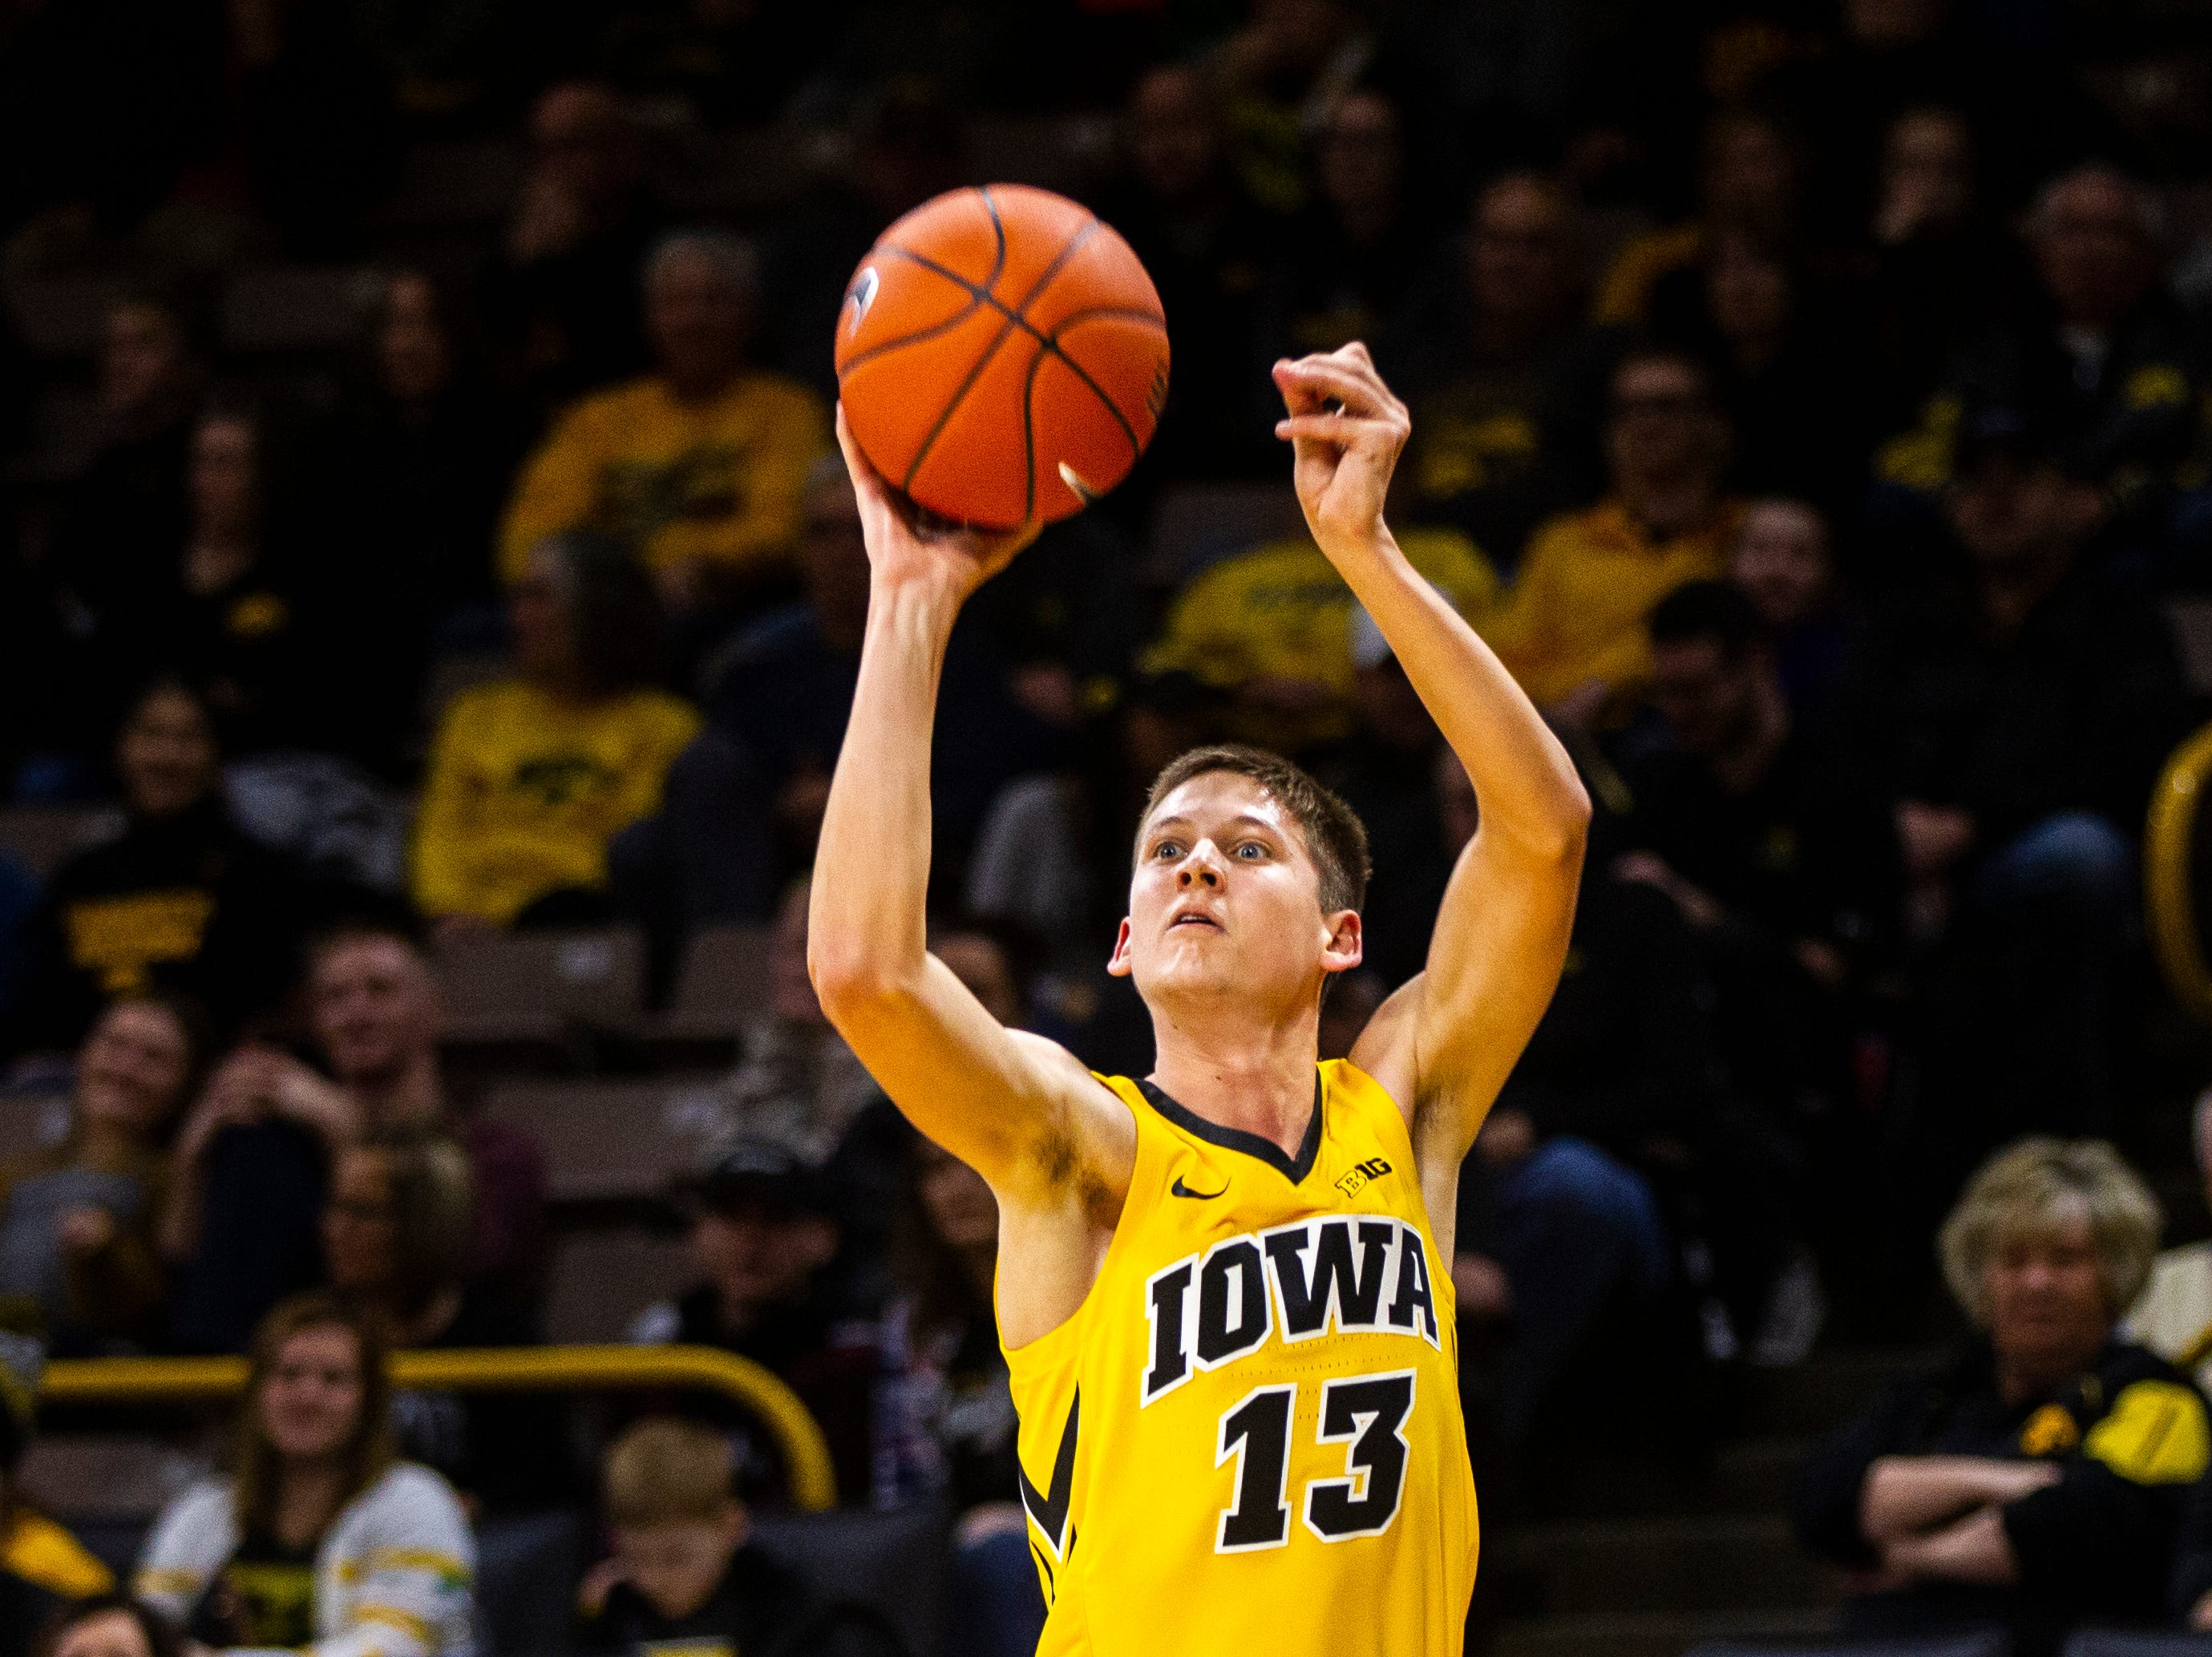 Iowa guard Austin Ash (13) shoots a 3-point basket during a NCAA men's basketball game on Saturday, Dec. 22, 2018, at Carver-Hawkeye Arena in Iowa City.